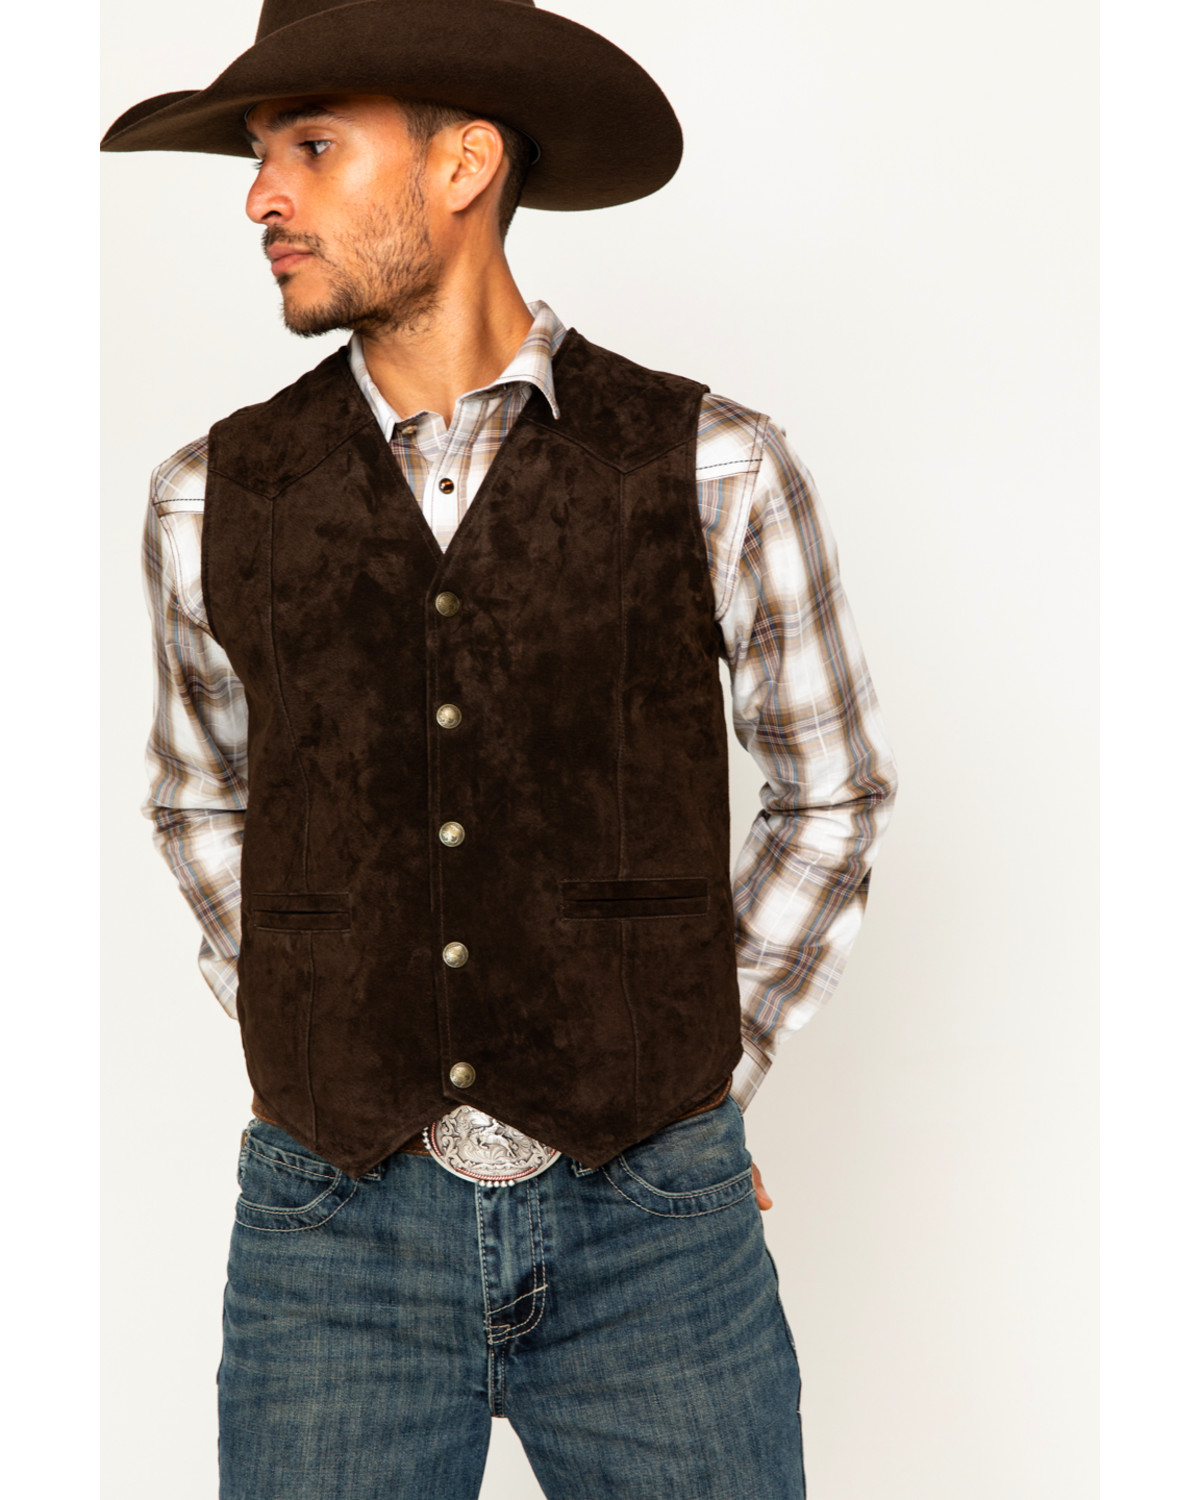 For riders and horse lovers of all ages! Western and horse-themed casual clothing, accessories, footwear, jewelry, home décor, collectibles, toys & gifts.